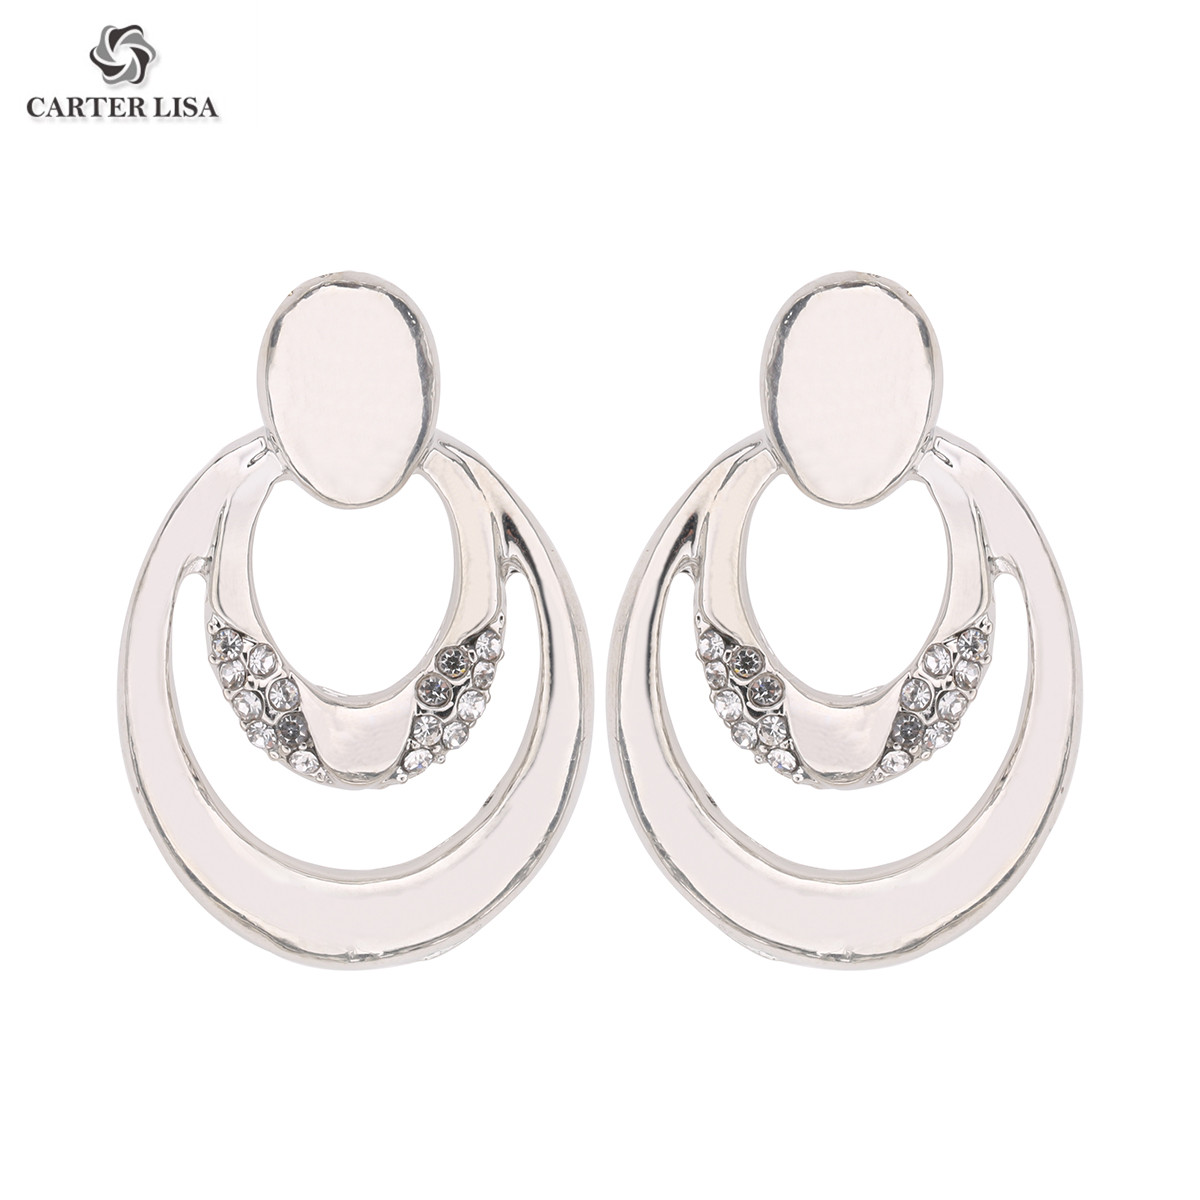 CARTER LISA Alloy Geometry Round Stud Earrings Ladies Elegant Rhinestone Pierced Earrings Brinco Women Jewelry Fashion SEEA-055